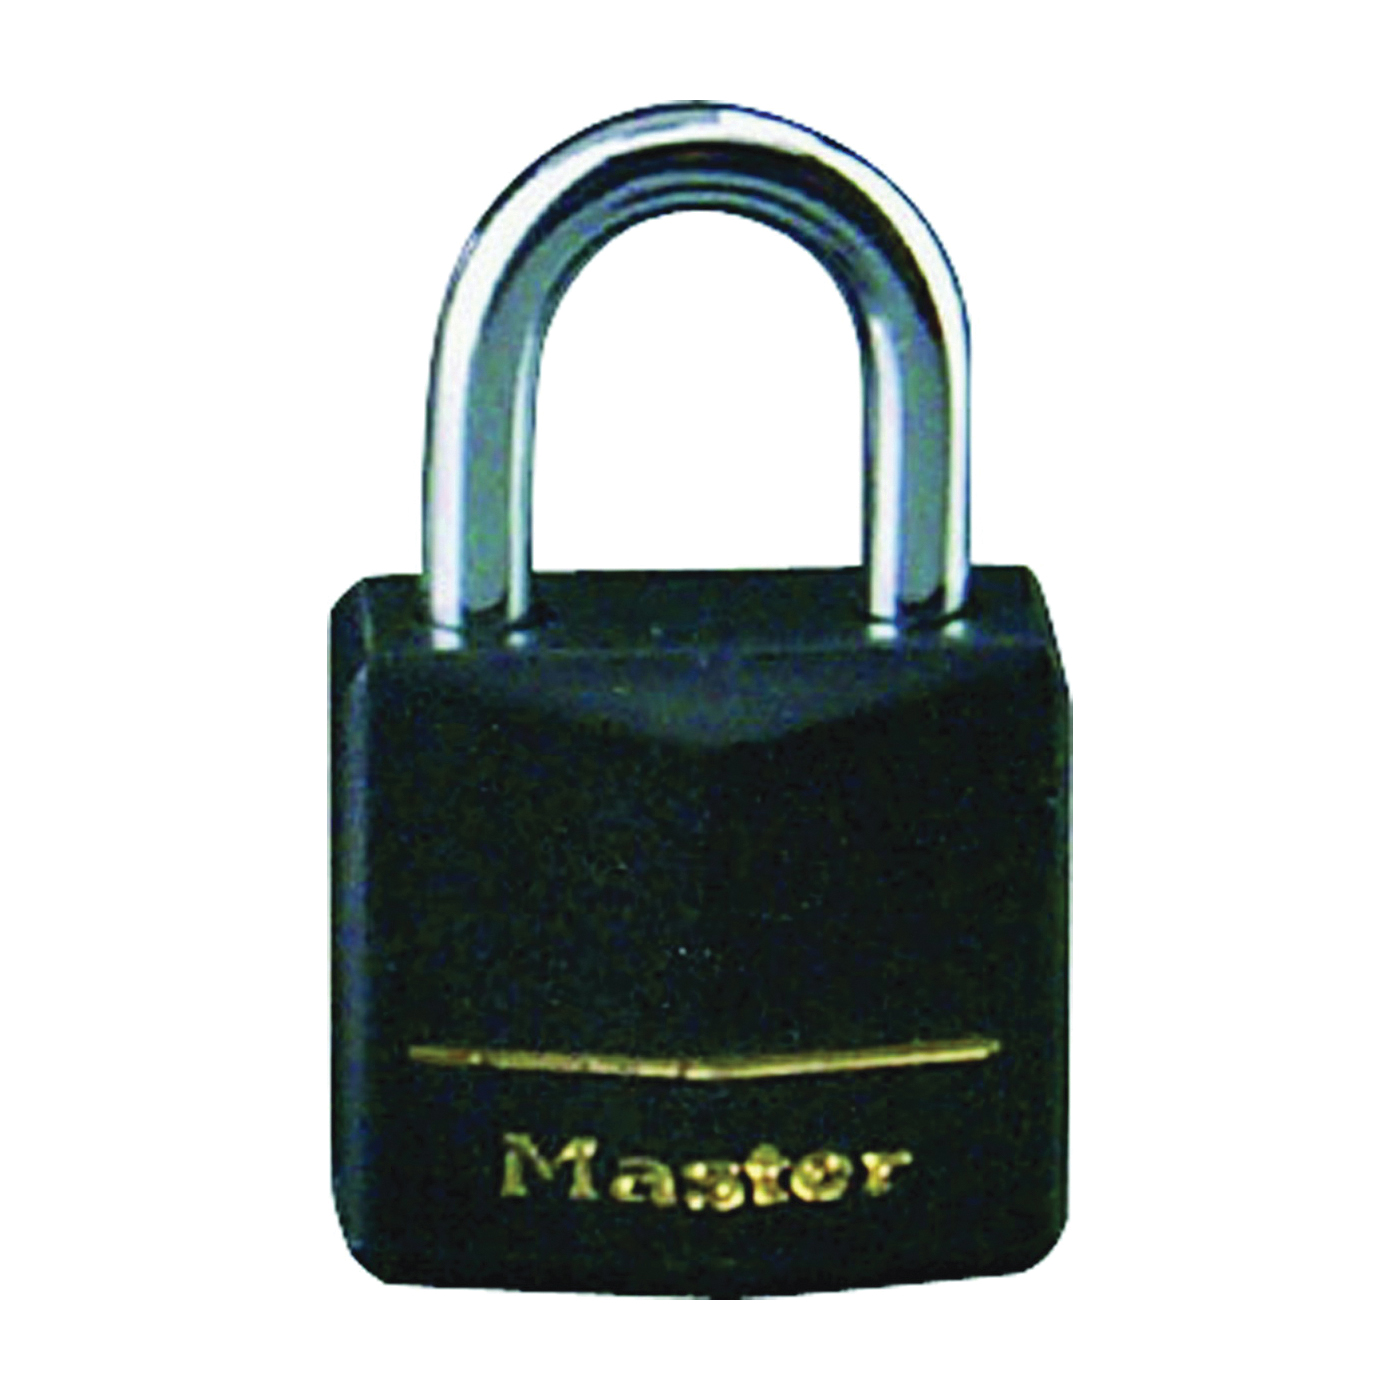 Picture of Master Lock 141T Padlock, Keyed Alike Key, 1/4 in Dia Shackle, Steel Shackle, Brass Body, 1-9/16 in W Body